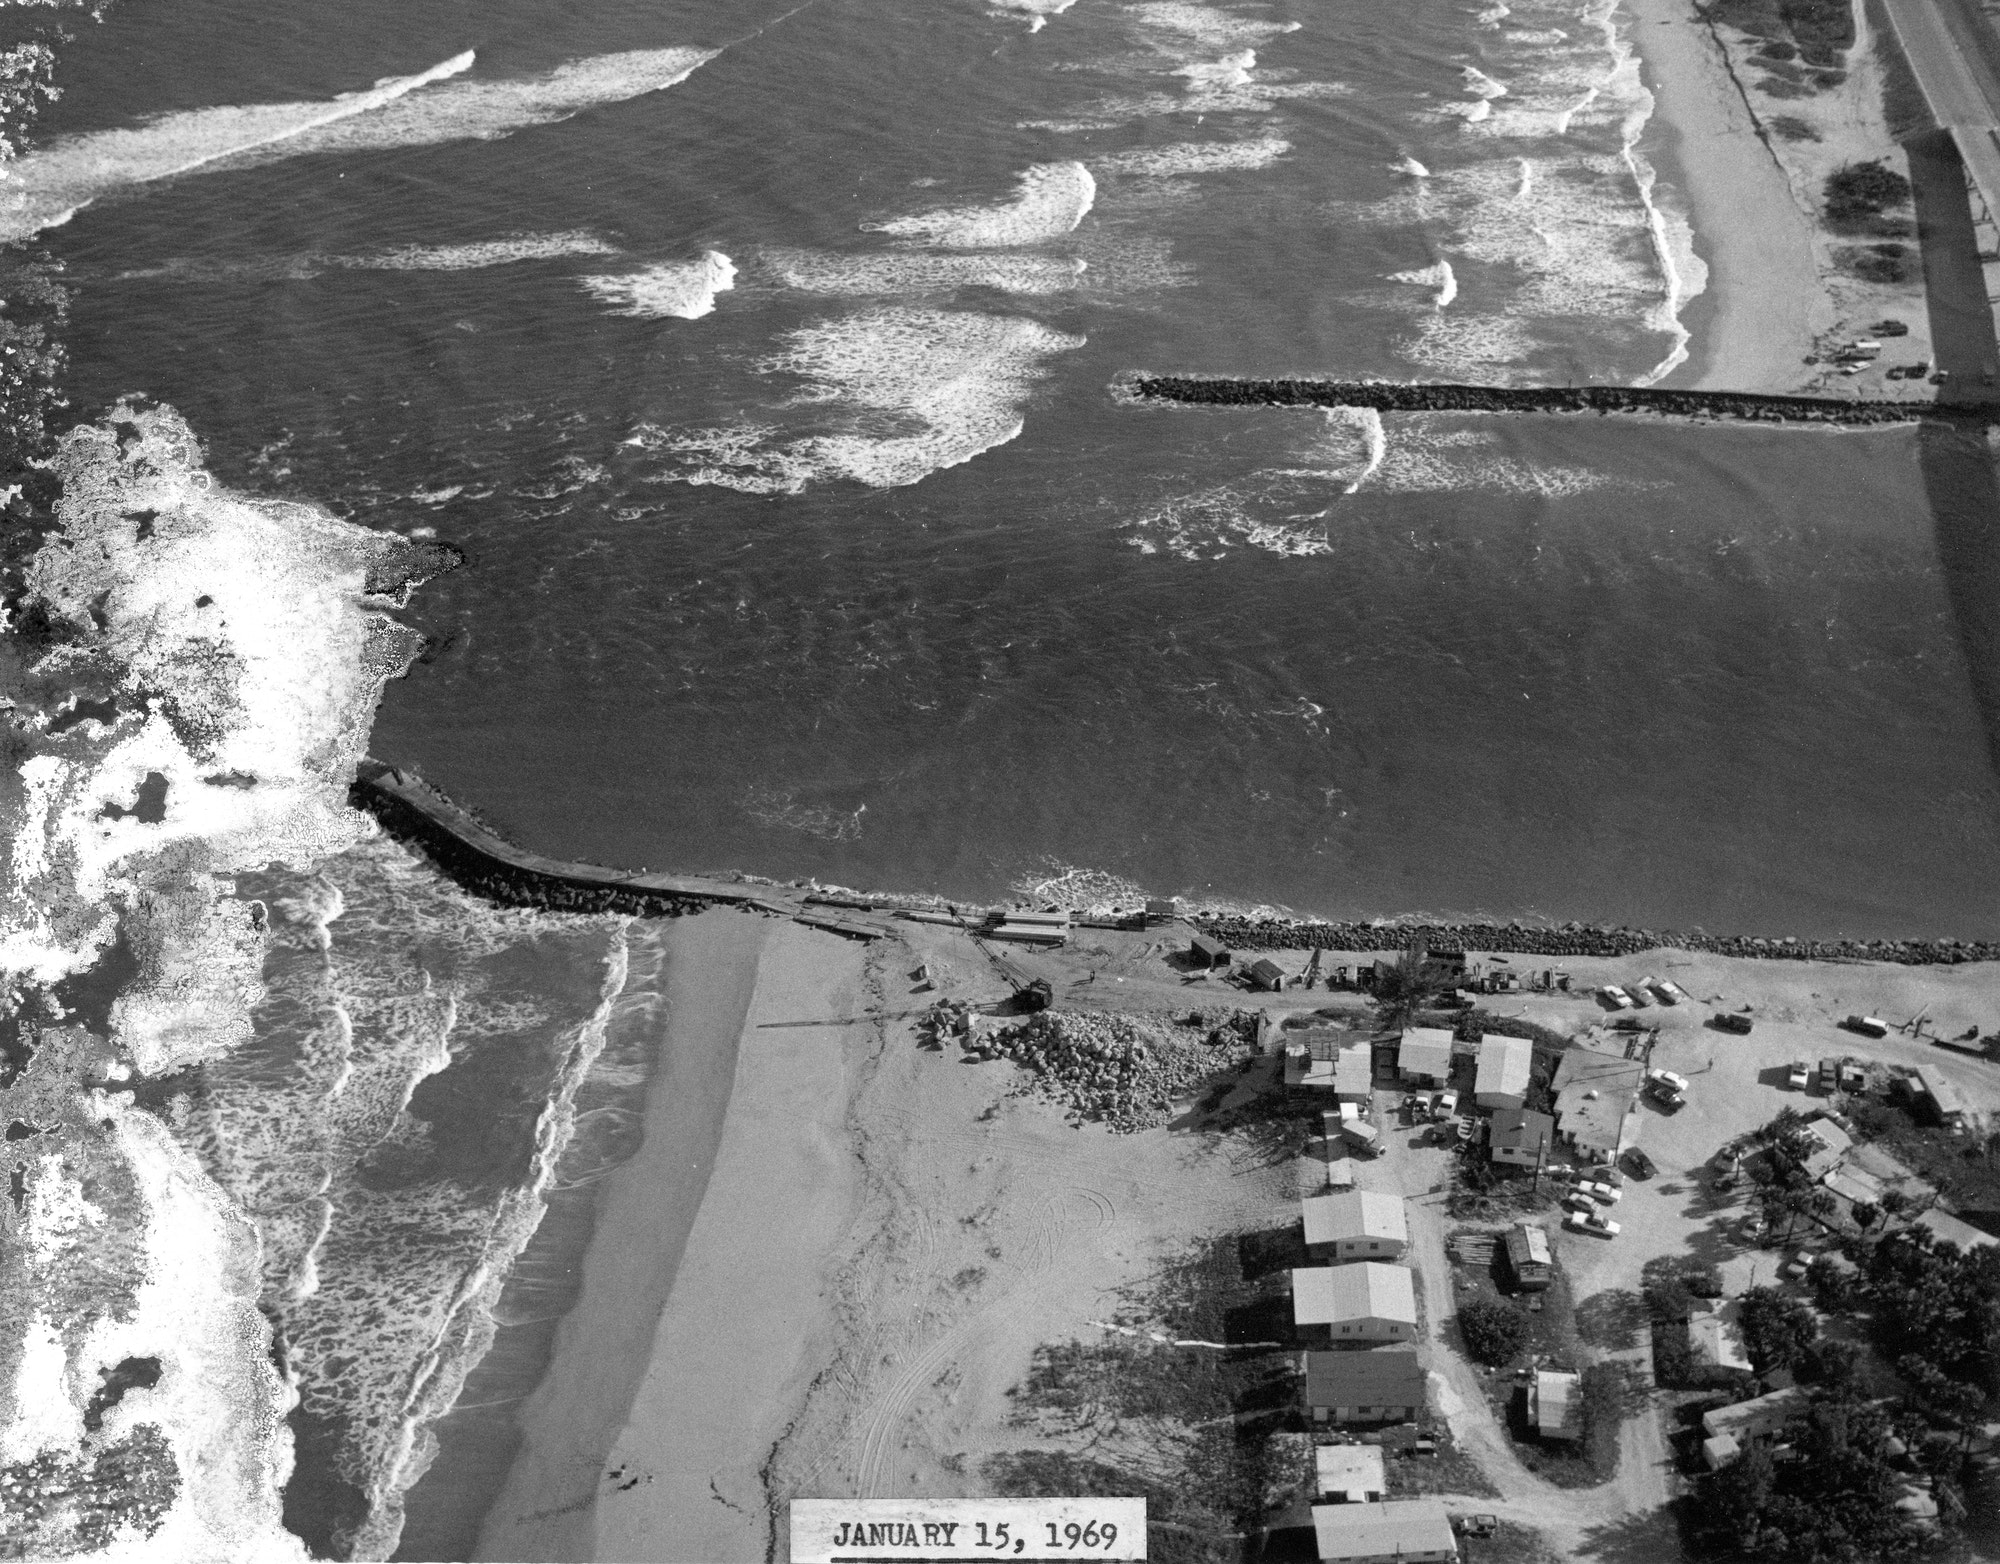 aerial view of the inlet mouth showing homes on the northern shoreline and construction staging area for north jetty and south jetty in background